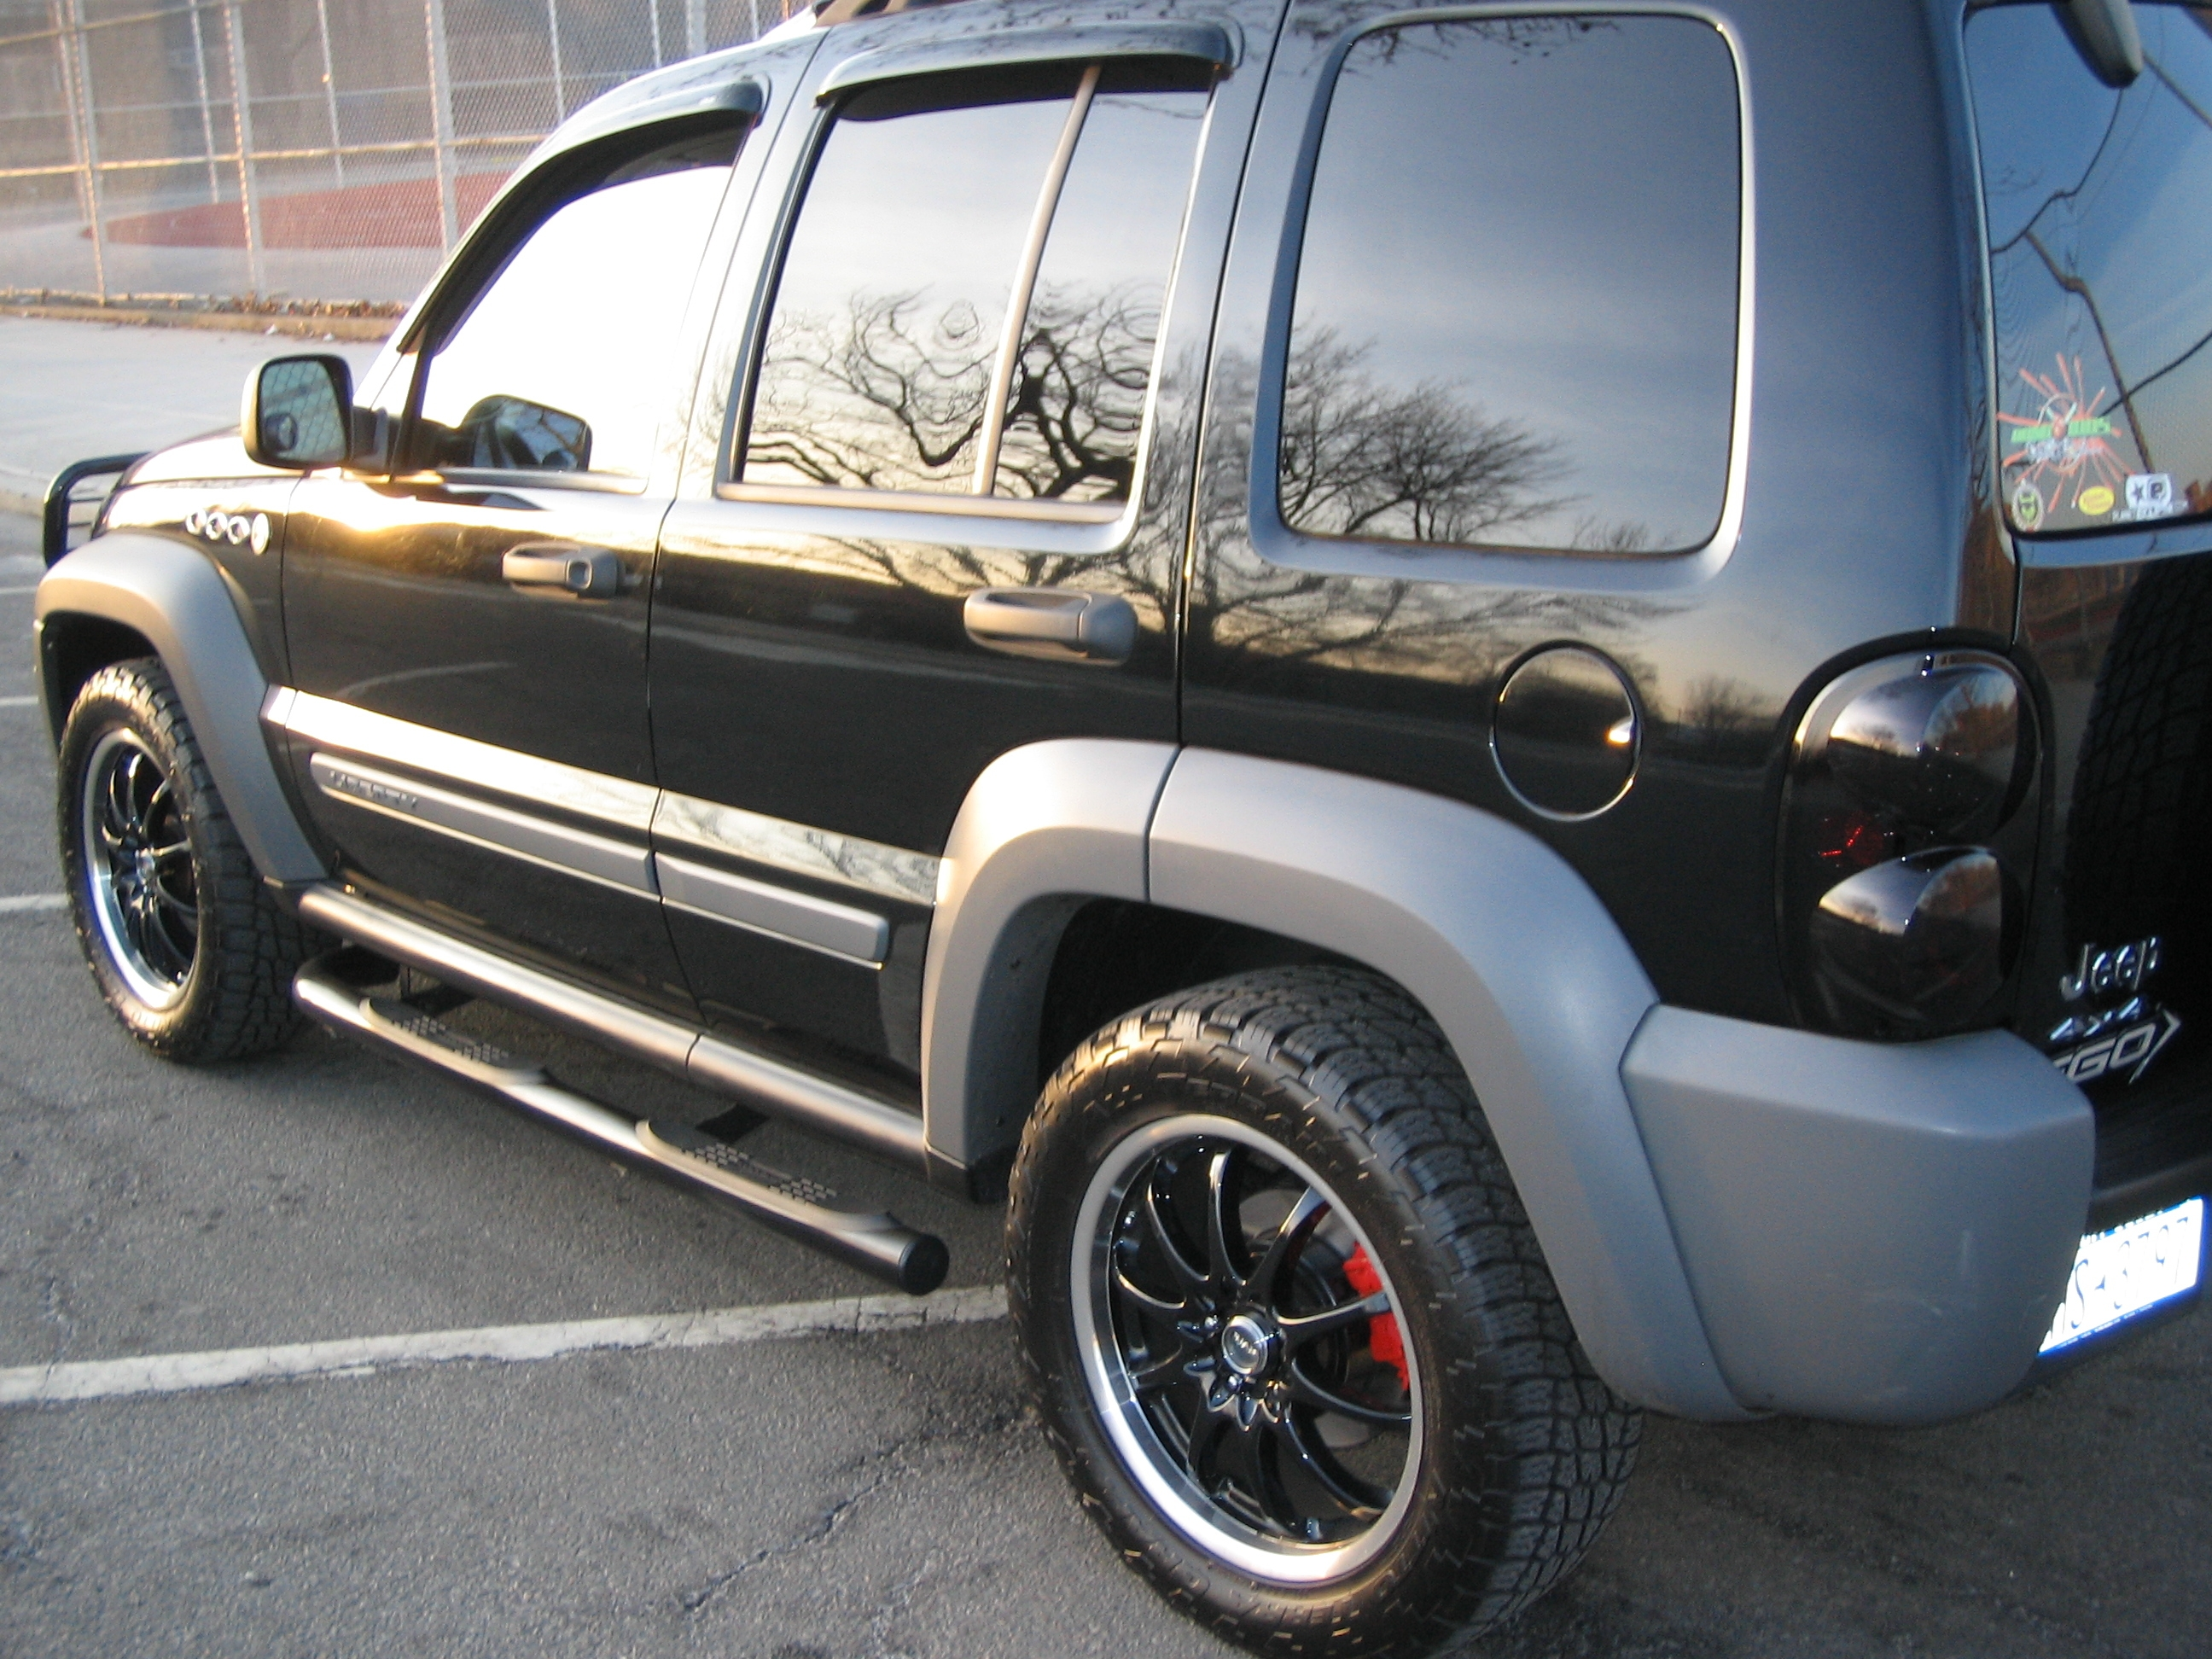 bighec45's 2005 Jeep Liberty